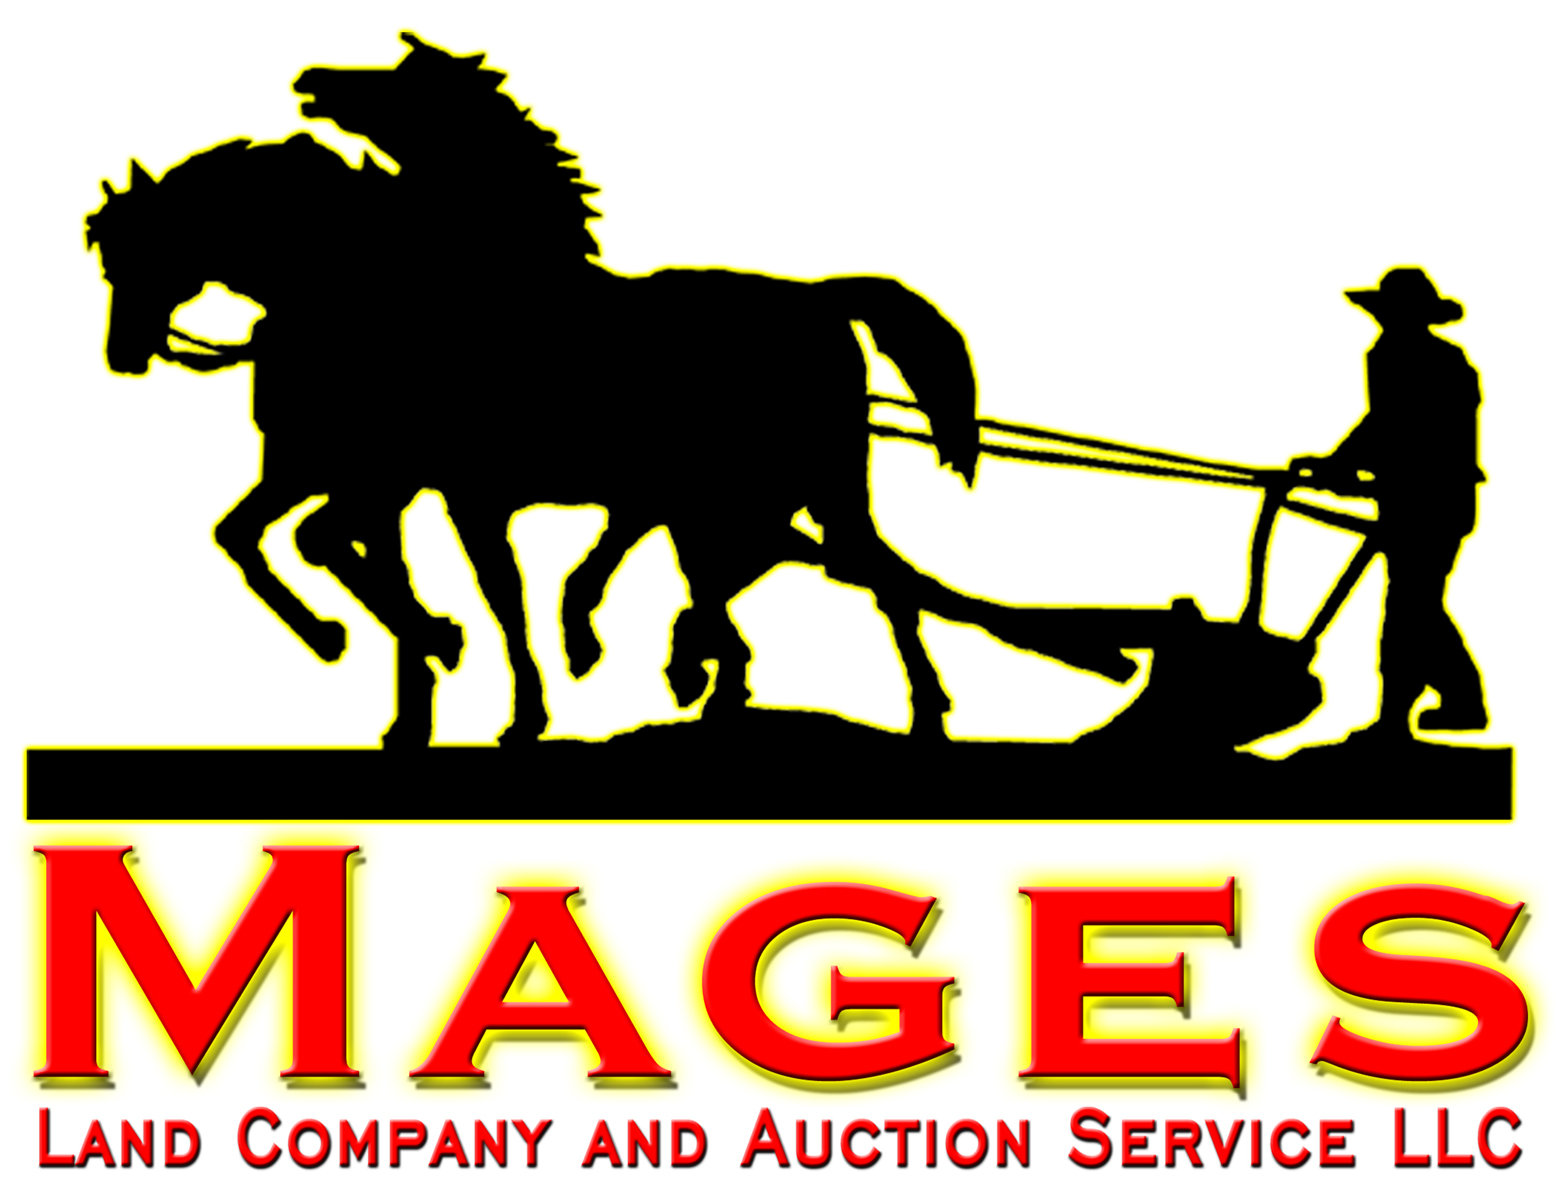 Mages Land Company and Auction Service LLC